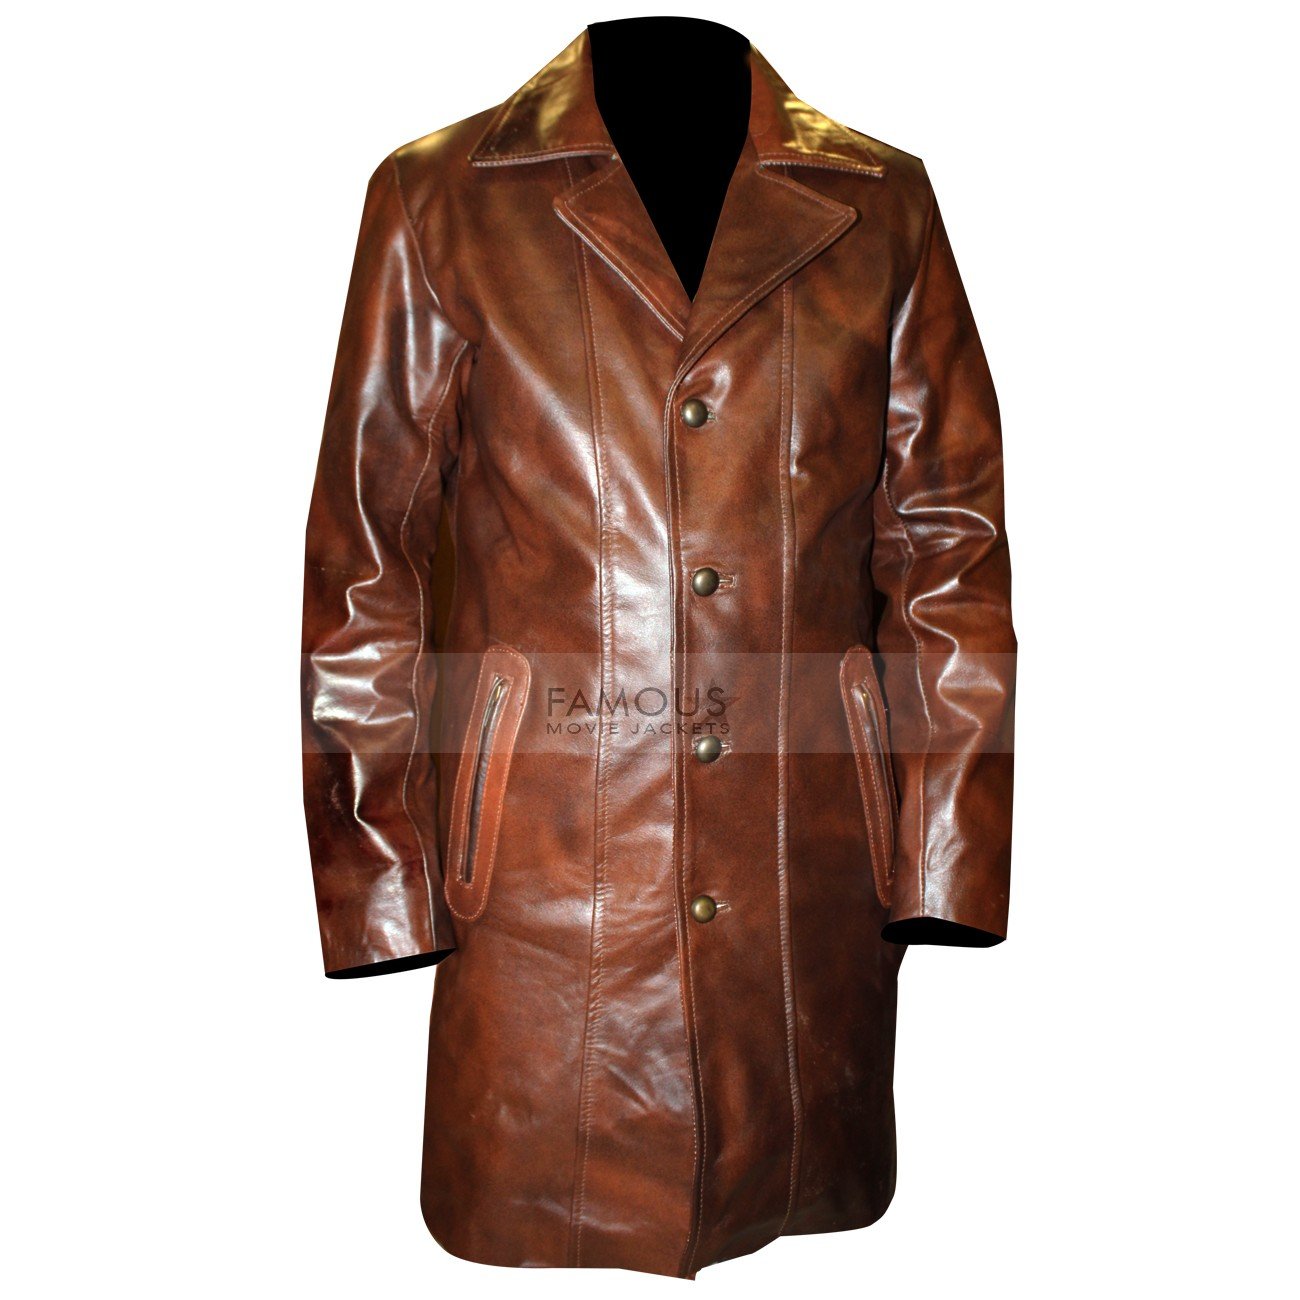 "80e70c9c687c Be the first to review ""Starsky & Hutch Owen Wilson Brown Leather Jacket""  Cancel reply"